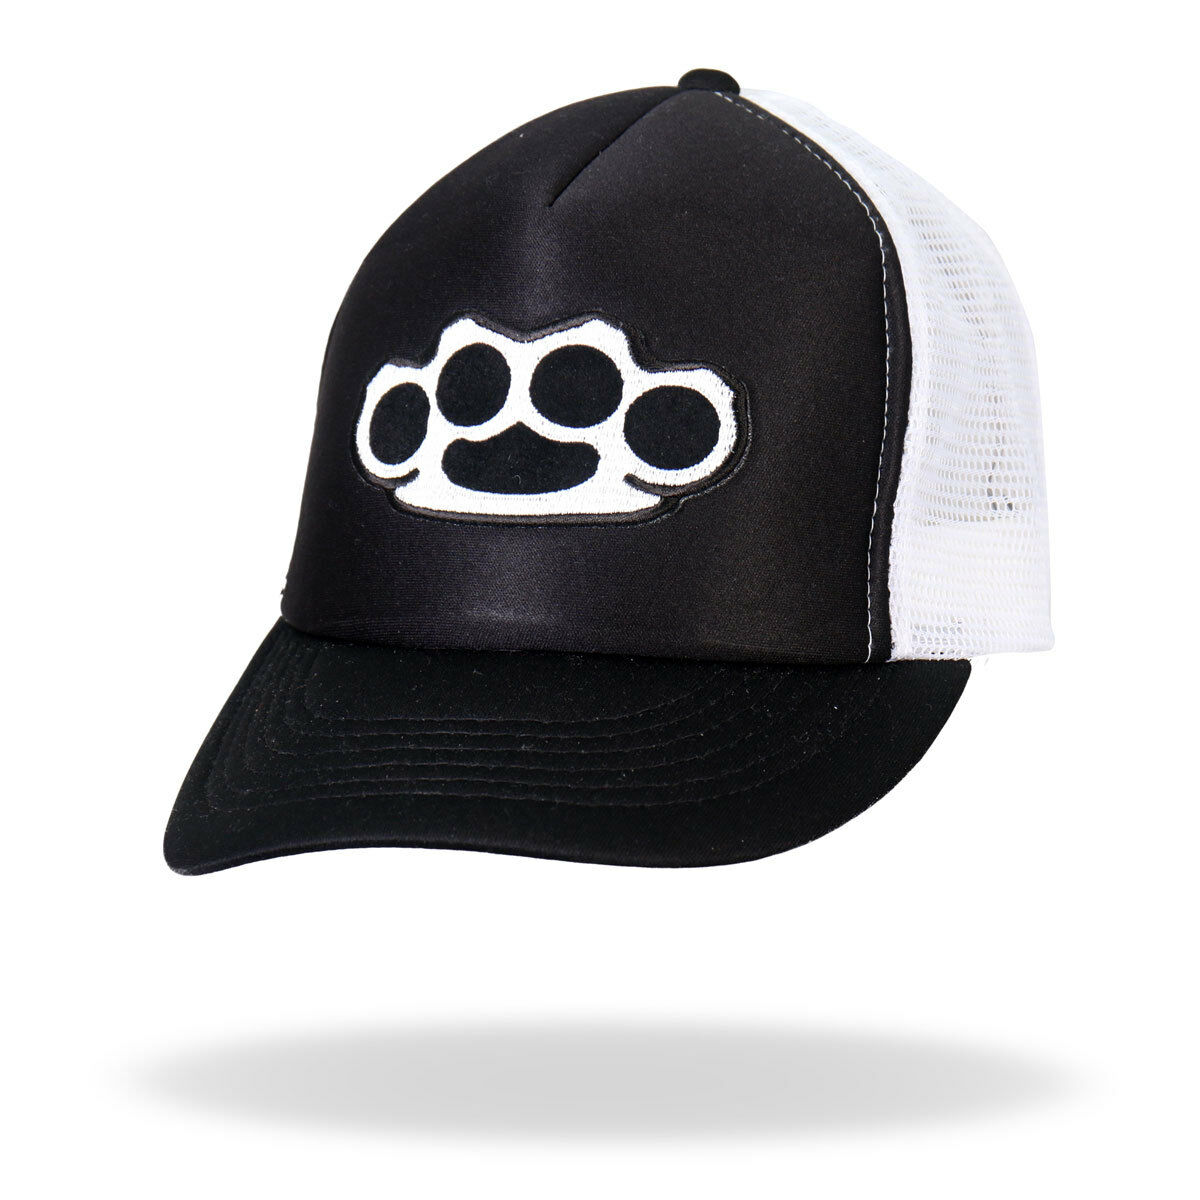 Knuckles Black & White Trucker Snapback Hat   Hat H1009 c0d4ae